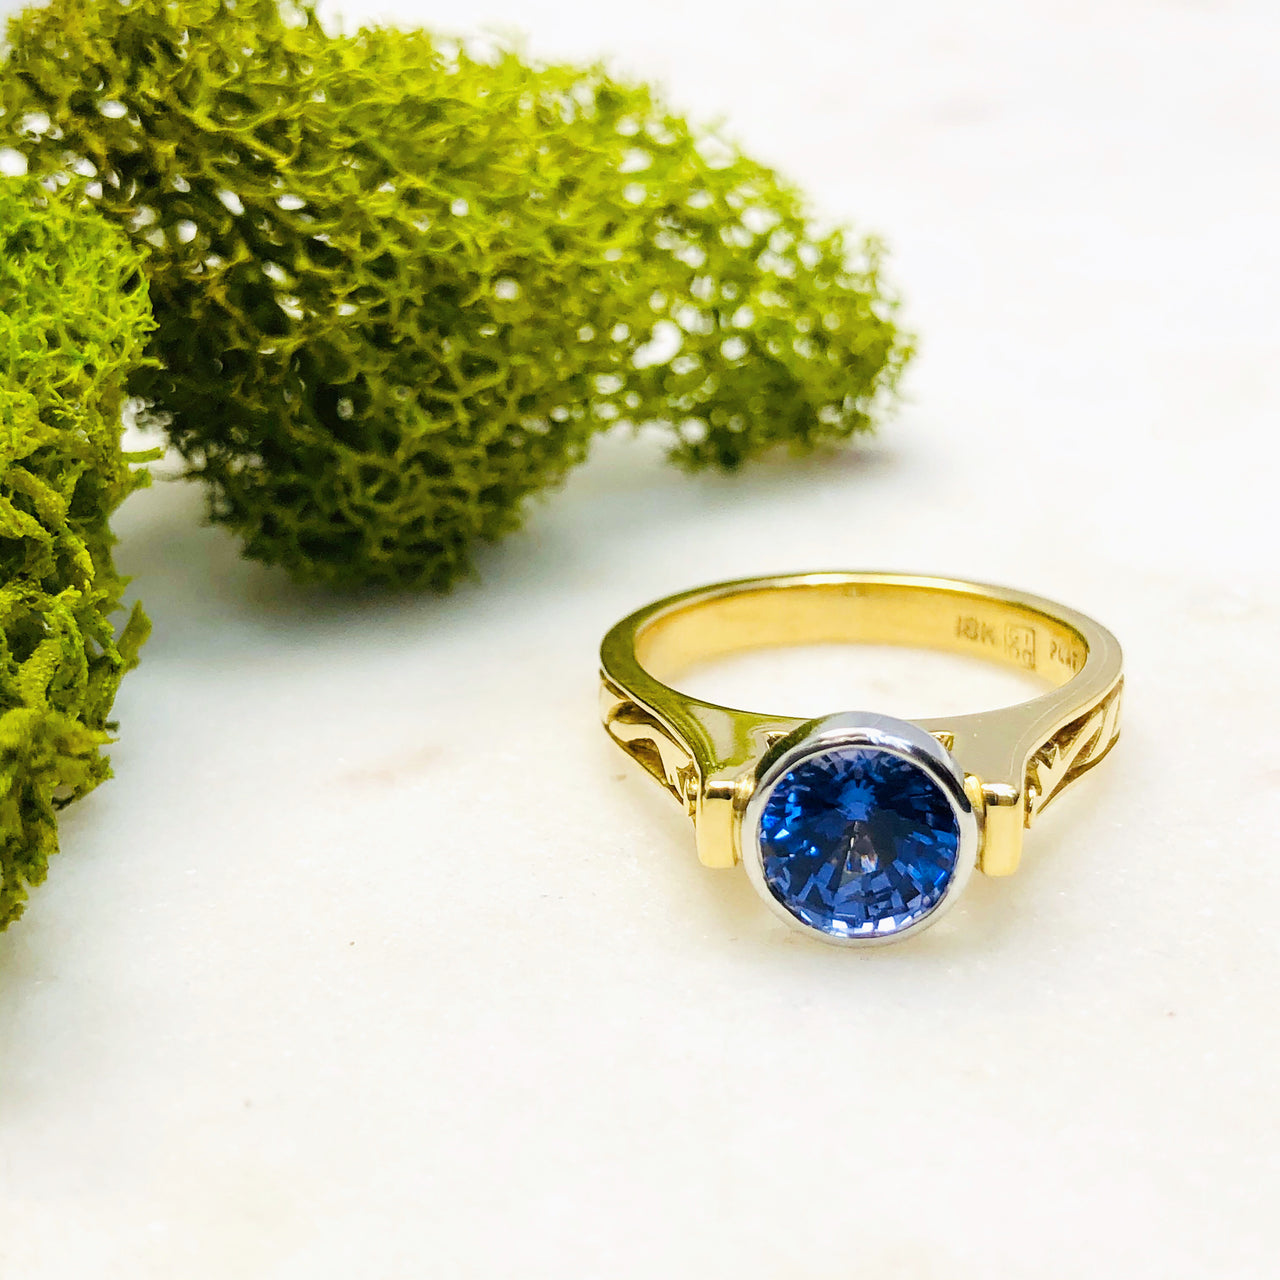 18k Yellow Gold and Platinum Chatham Sapphire Ring